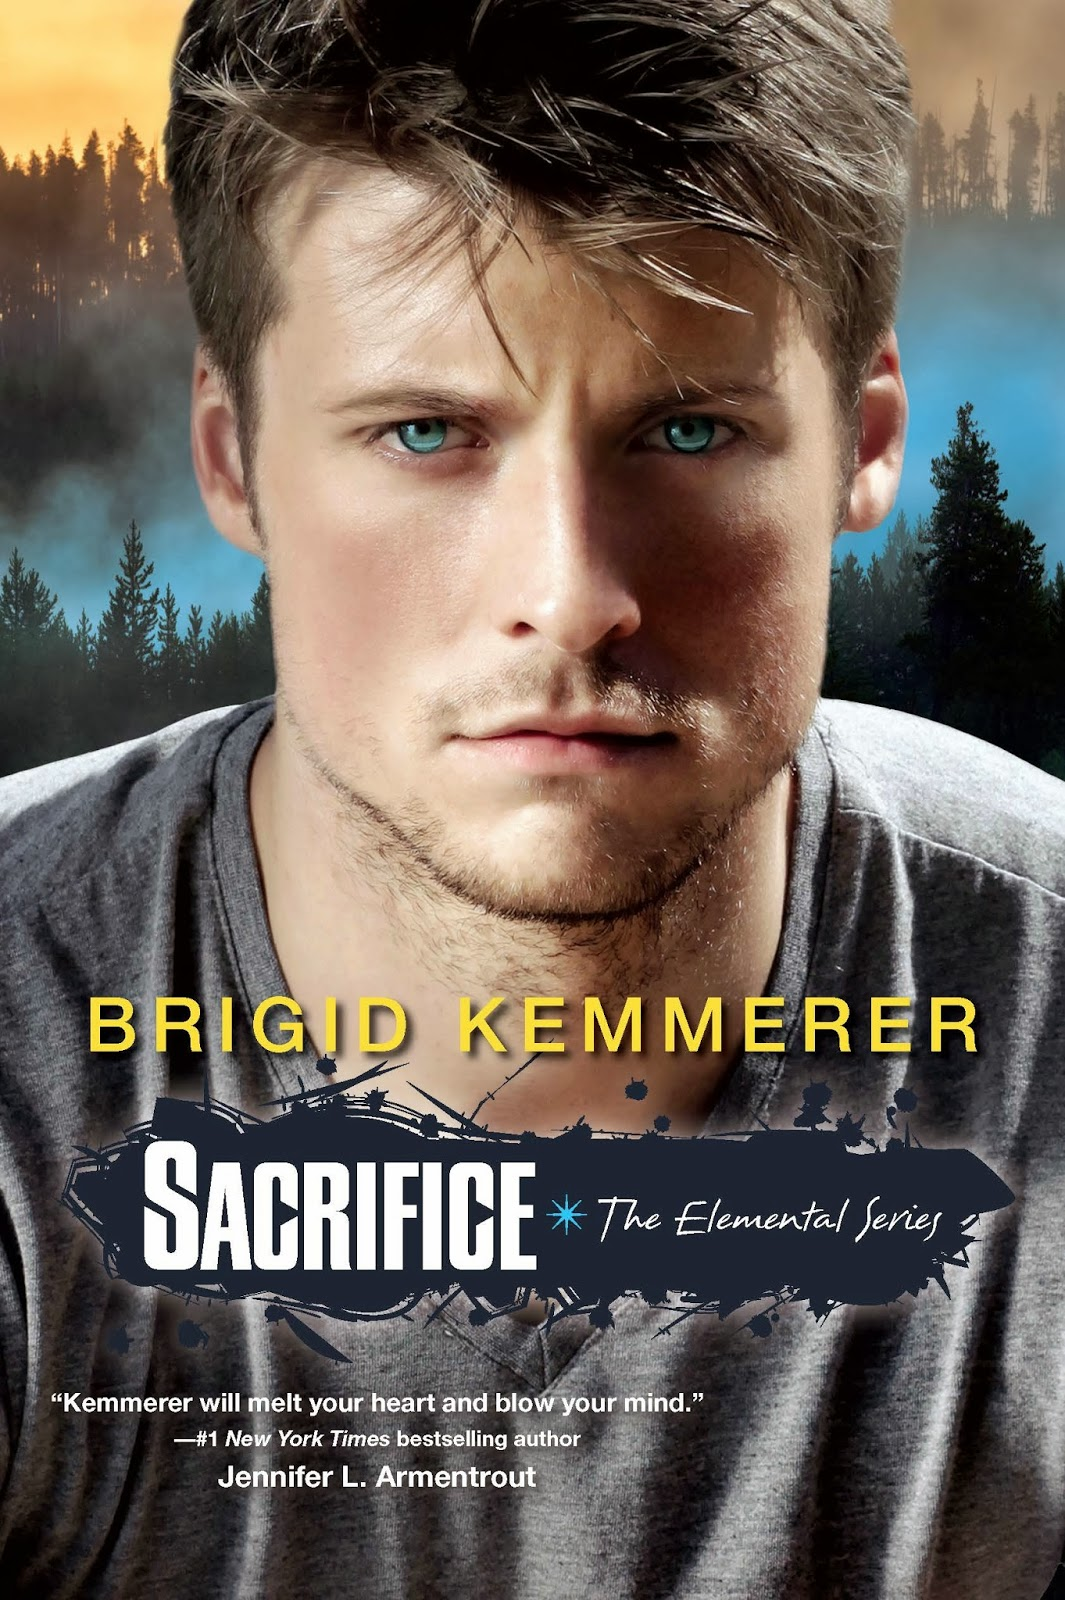 https://www.goodreads.com/book/show/17149158-sacrifice